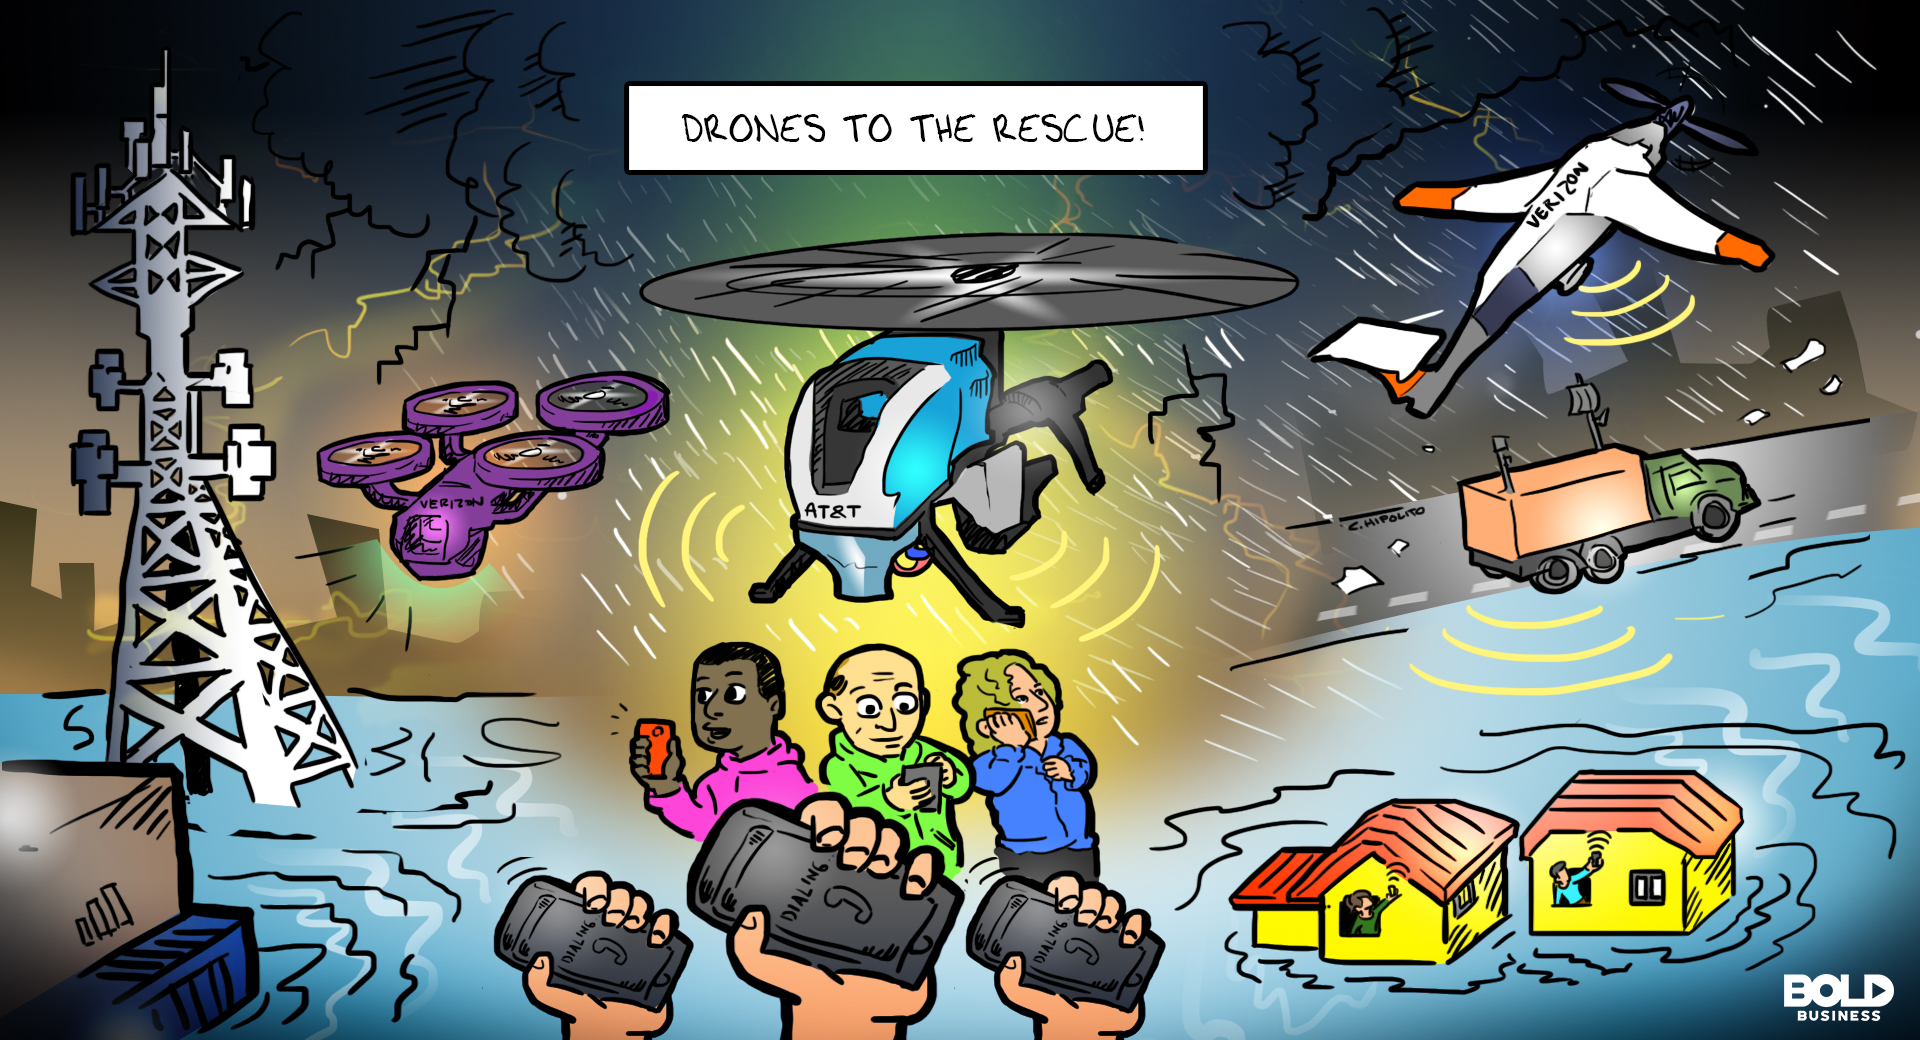 cartoon showing AT&T and Verizon drones being used as portable cell towers during calamities like floods and hurricanes